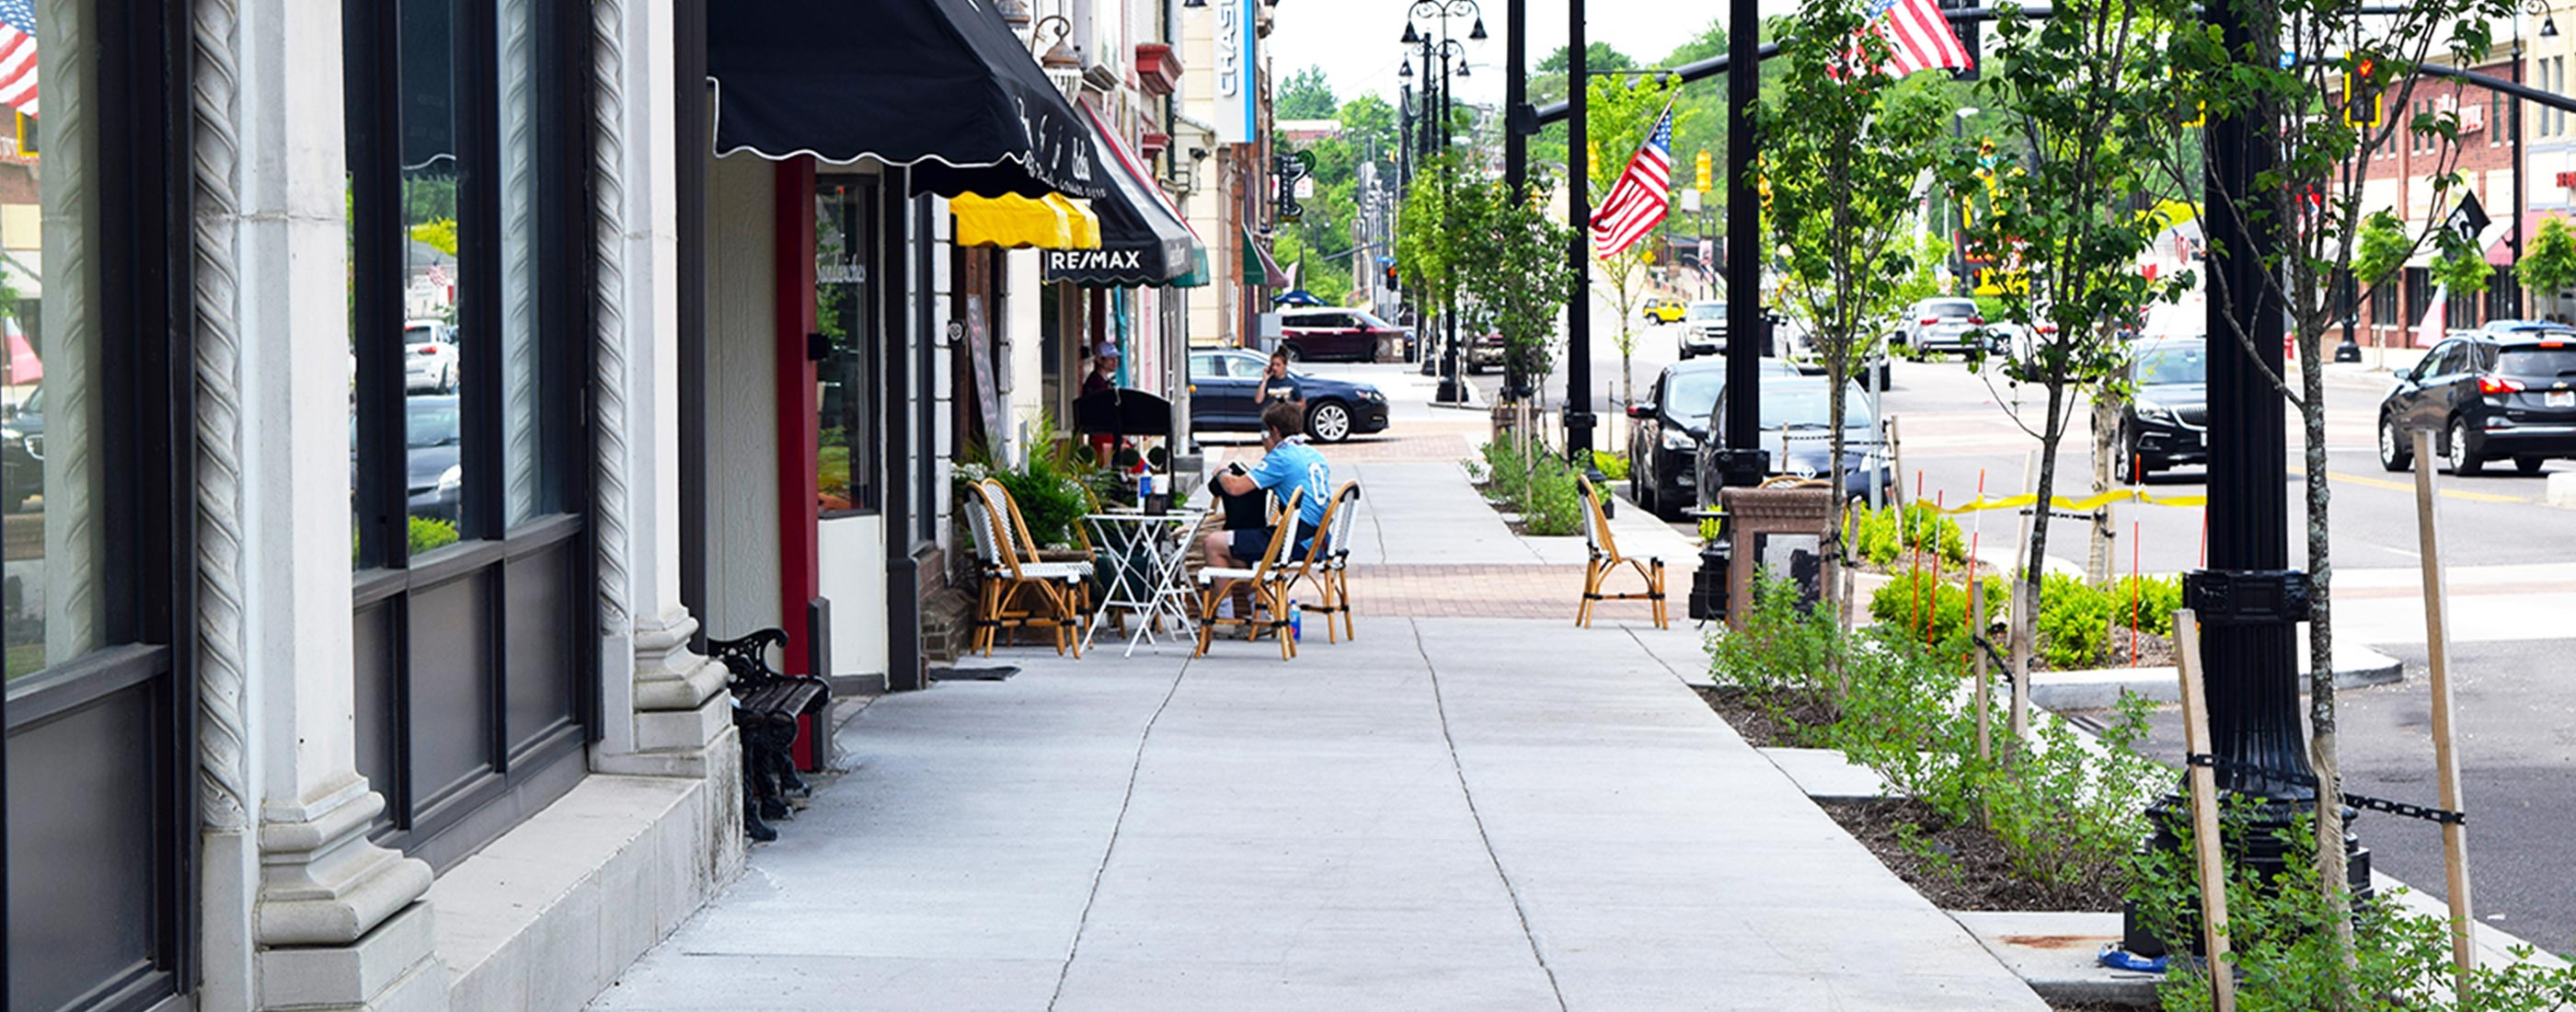 Sidewalk 1 of Massillon streetscape